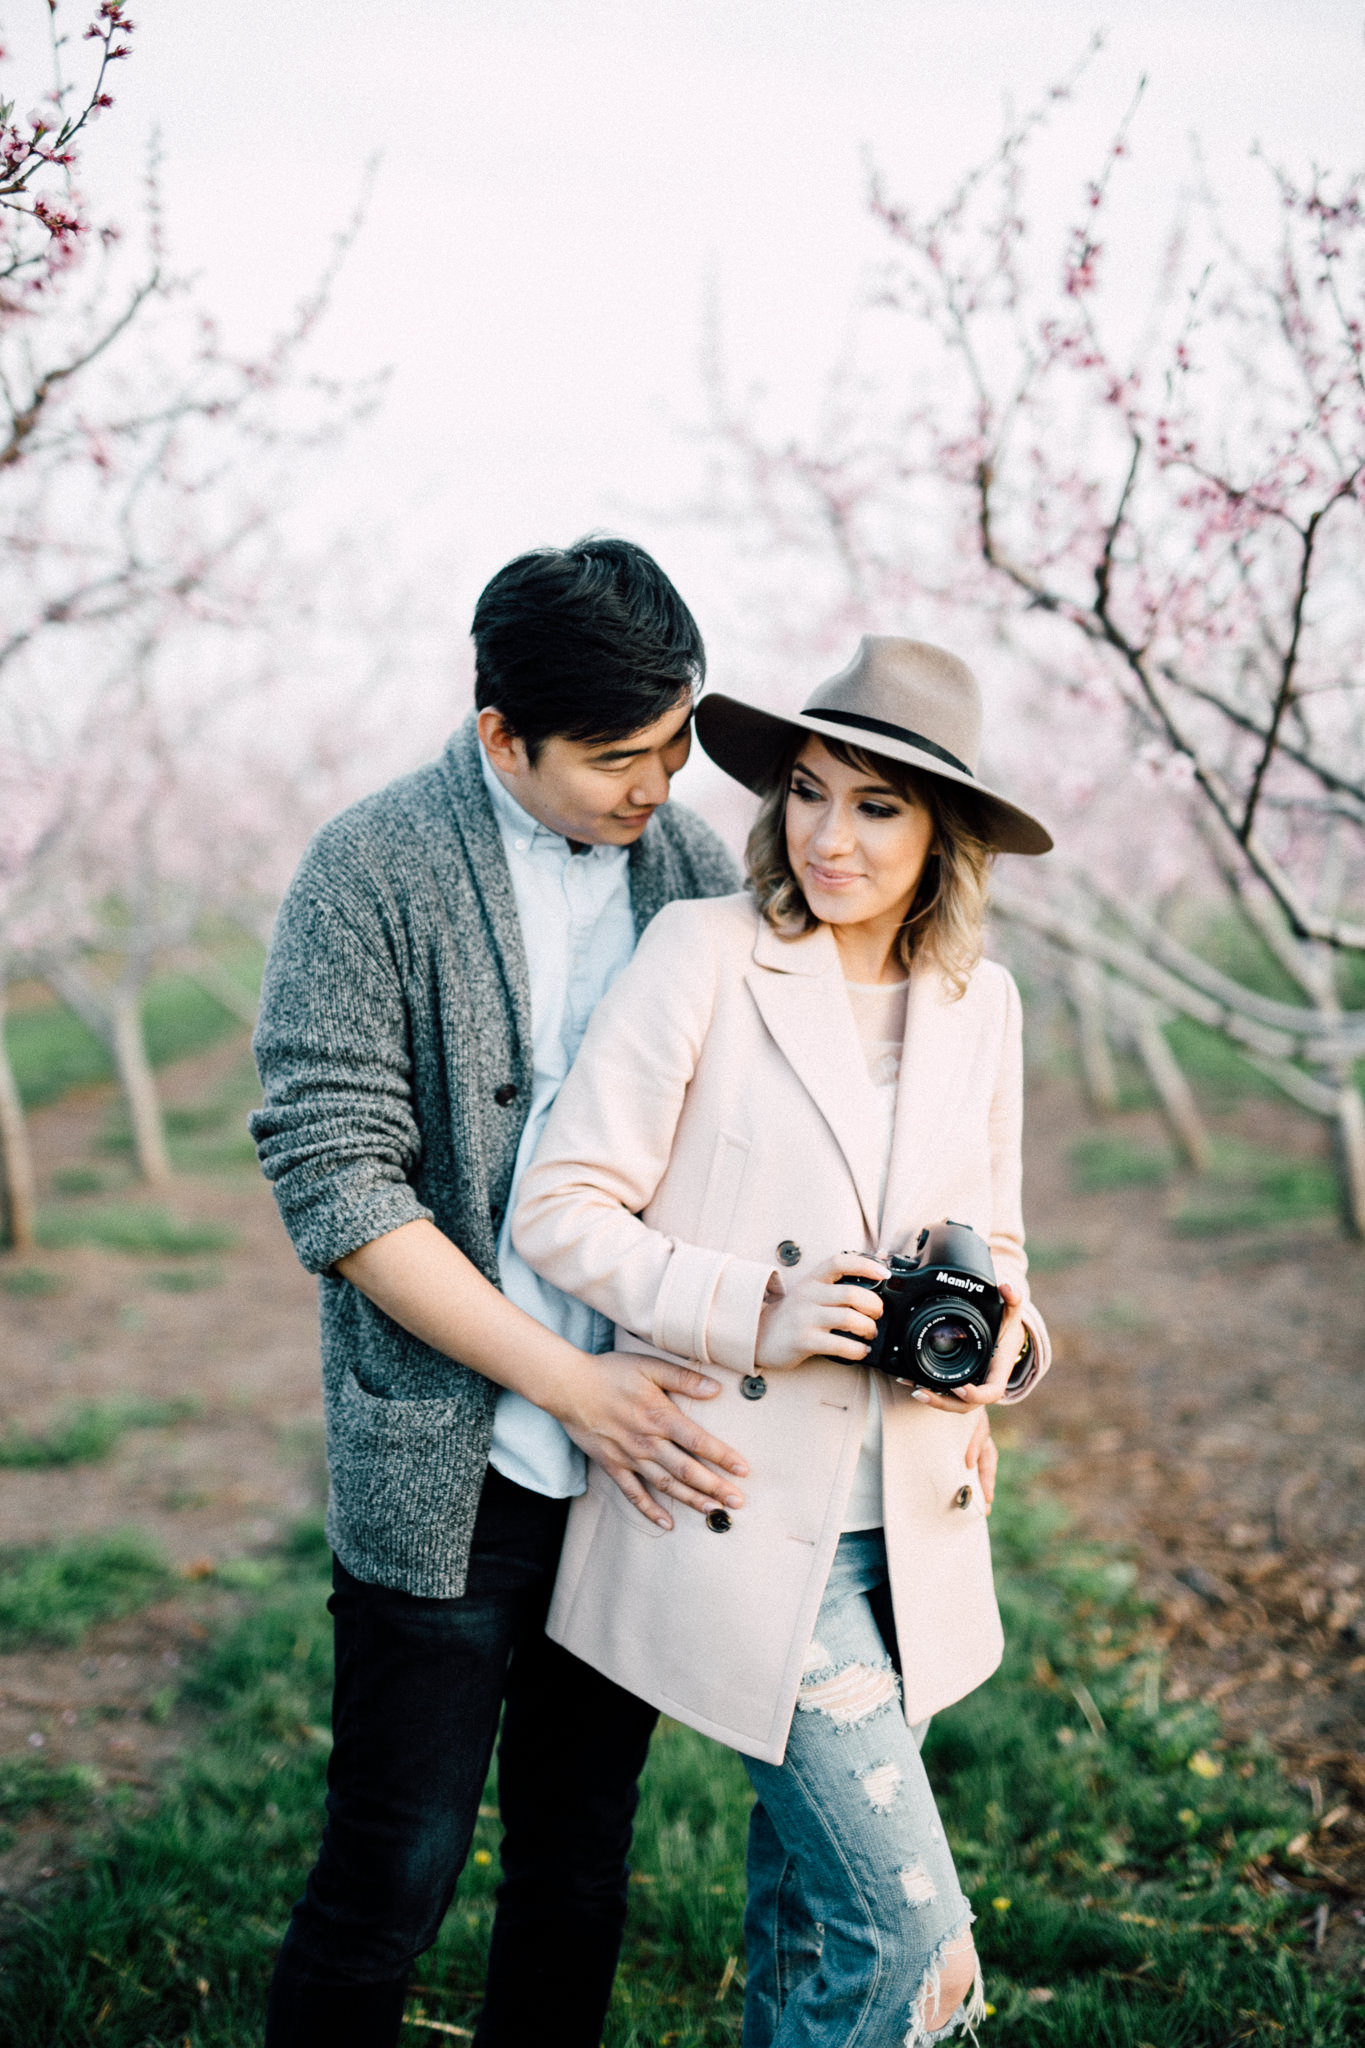 Niagara-Portrait-Session-Niagara-On-The-Lake-Cherry-Blossoms-photography-by-Simply-Lace-Photography-009.JPG